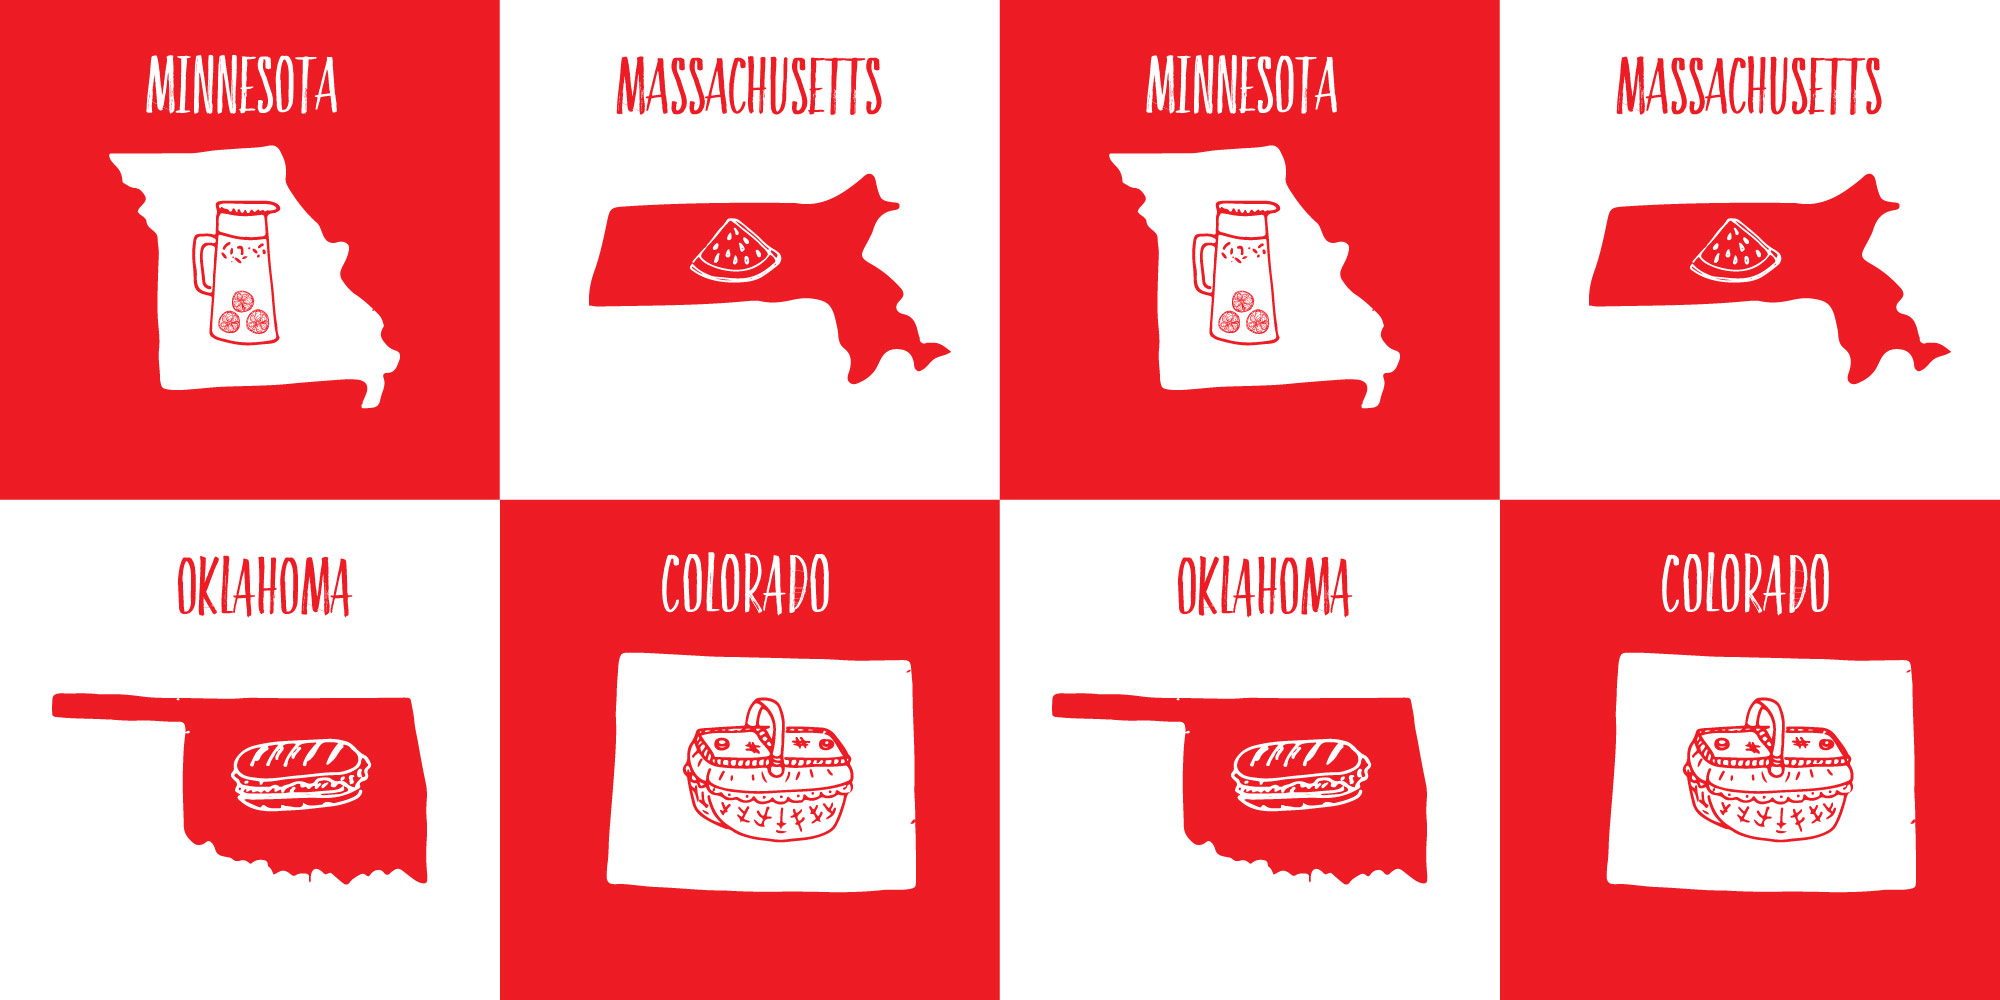 RV picnic destinations by state